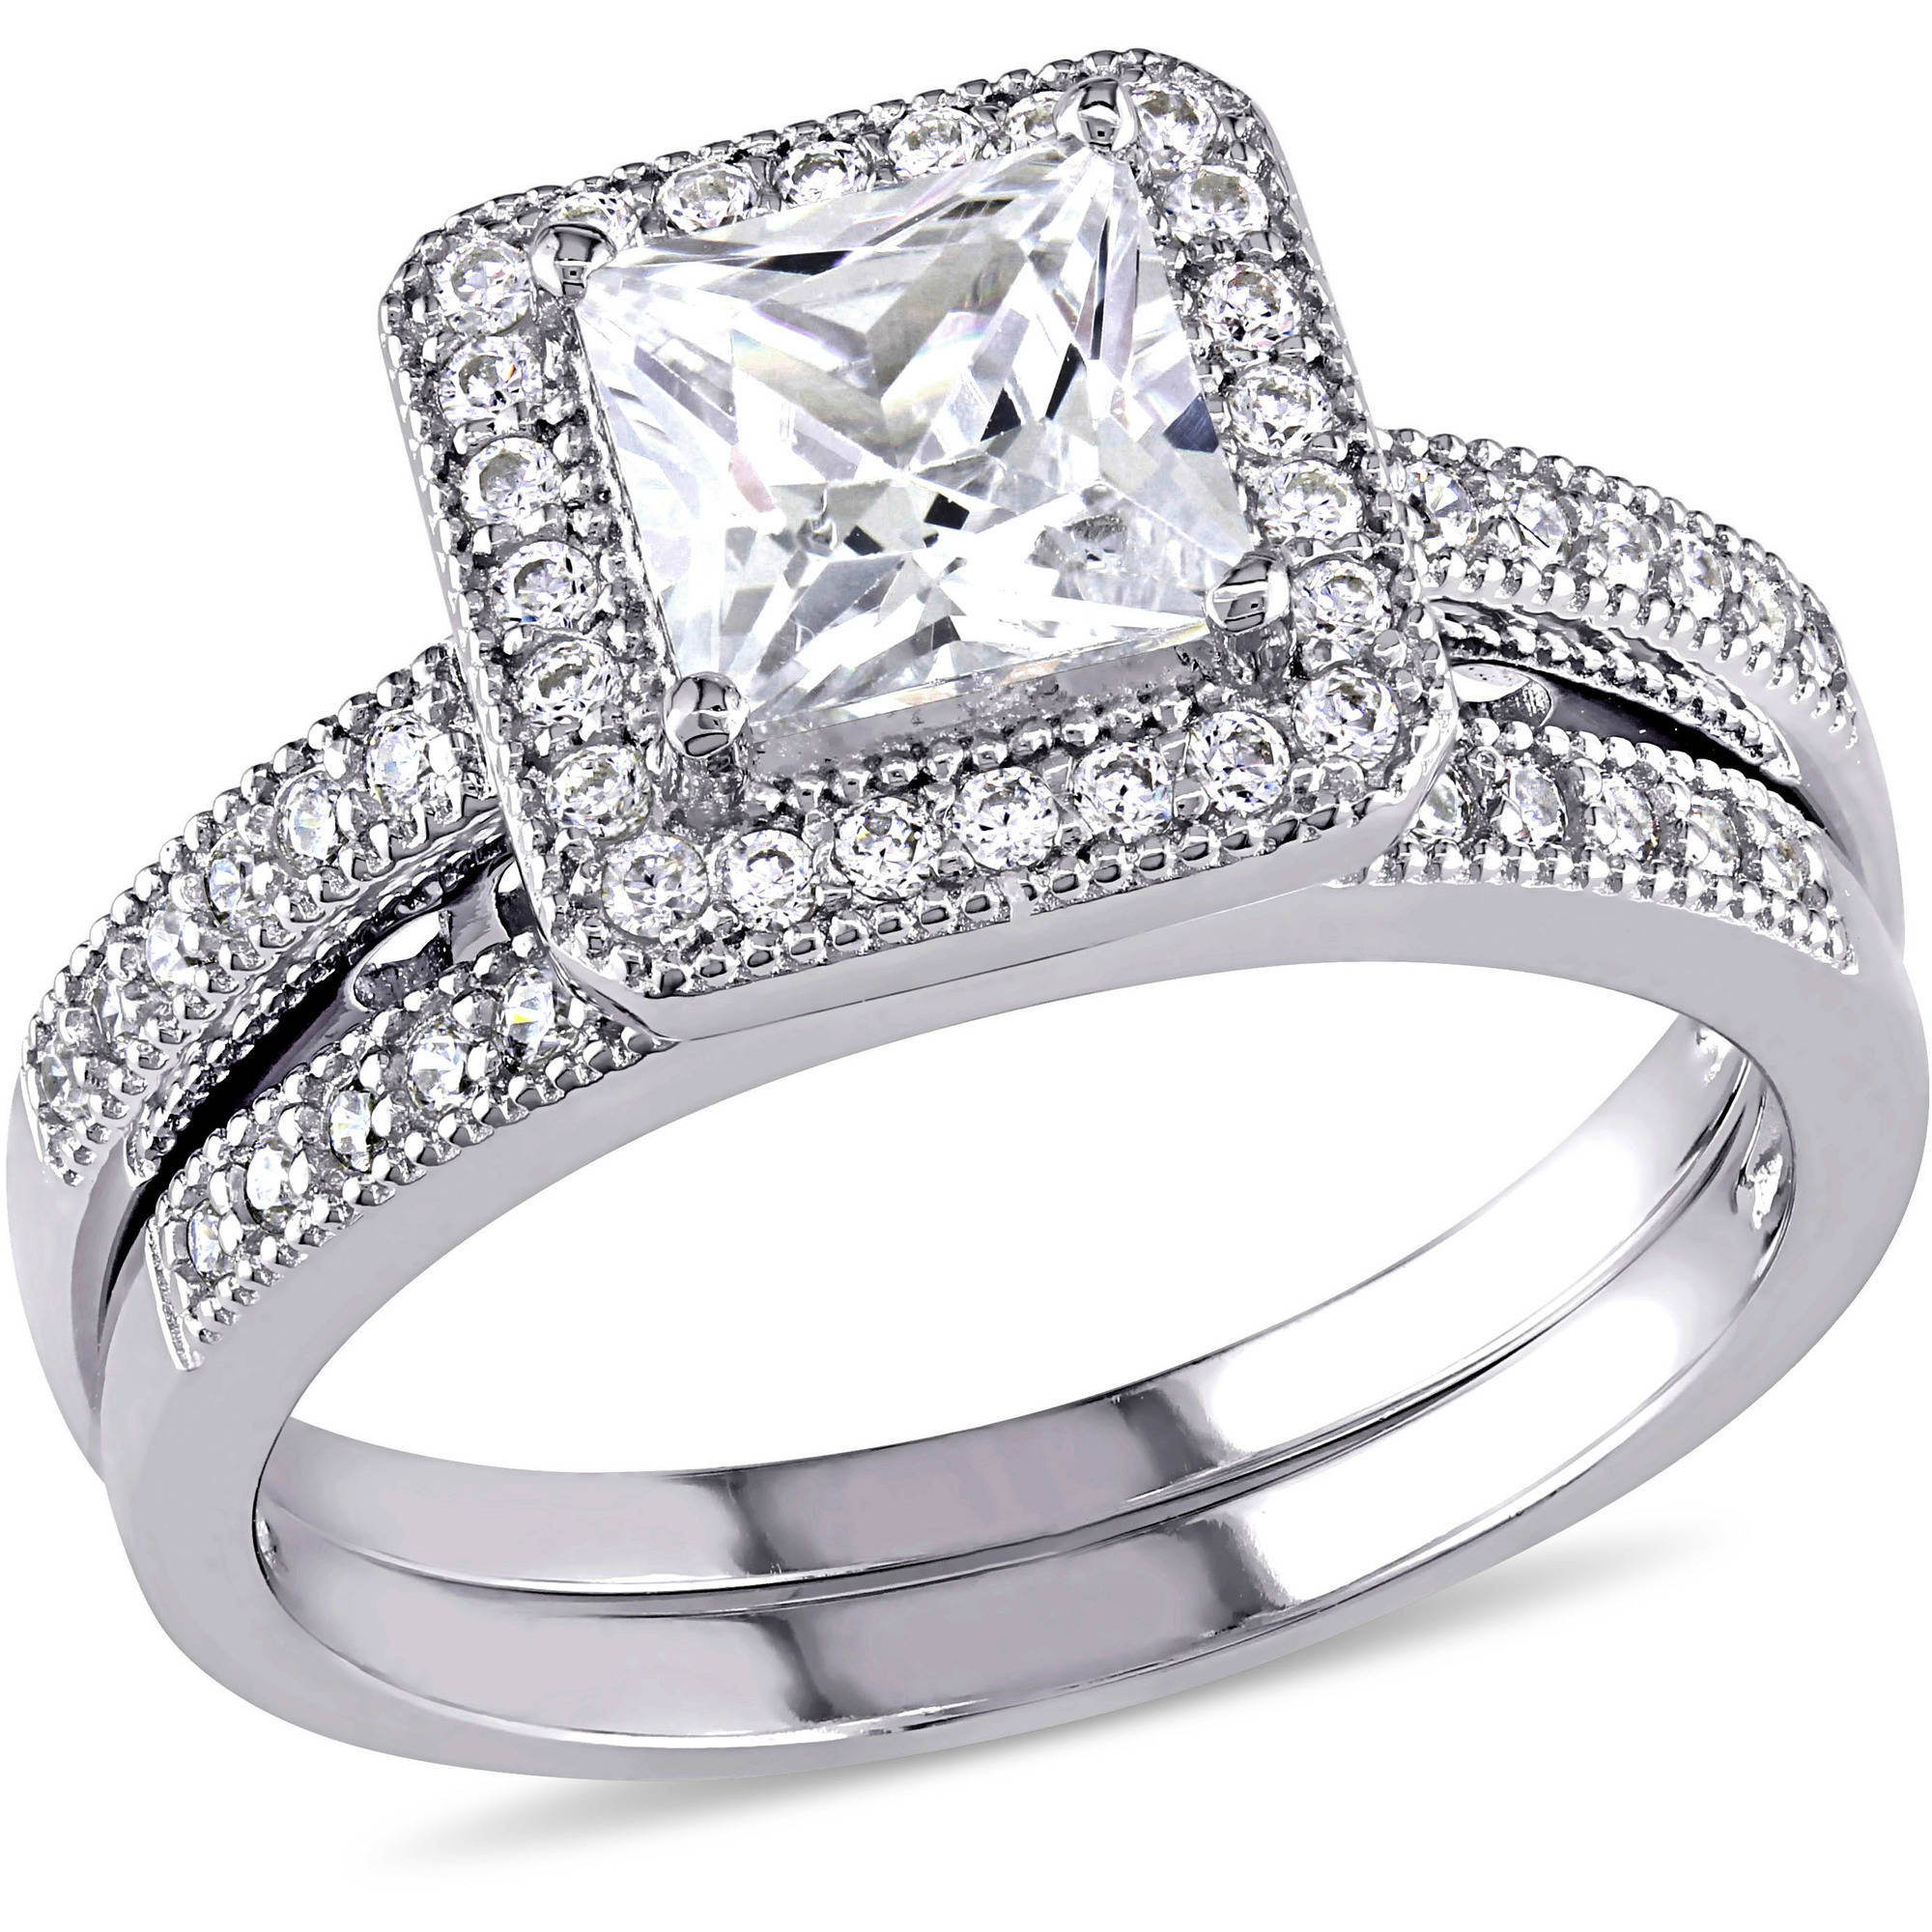 Delicieux Wedding Ring Sets   Walmart.com